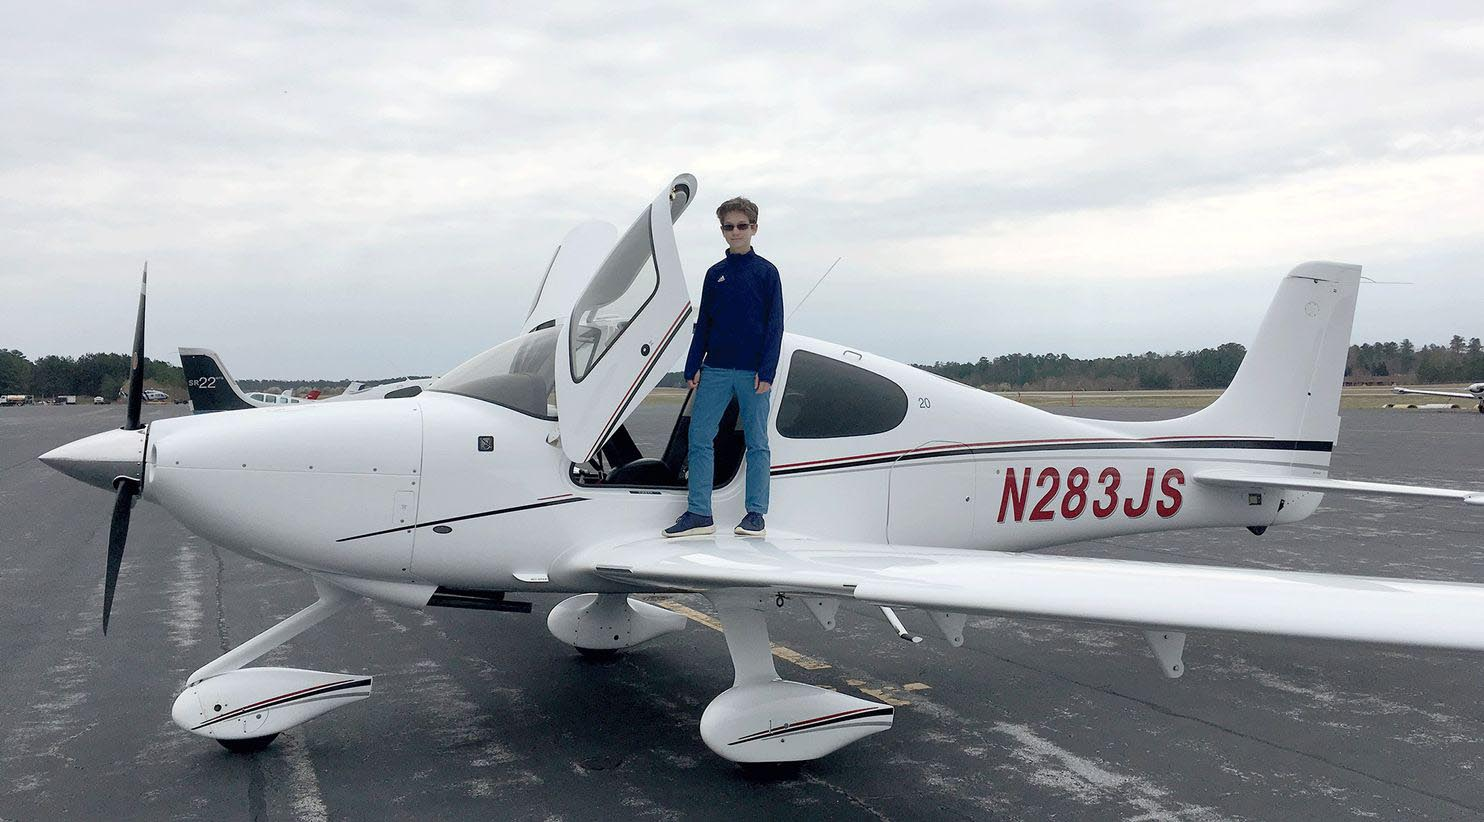 Cade Glass, 13, poses by a Cirrus SR20 airplane during a lesson at Chesterfield County Airport near Richmond, Va., in March. Glass has wanted to be a pilot since at least 7. MUST CREDIT: Scott Glass